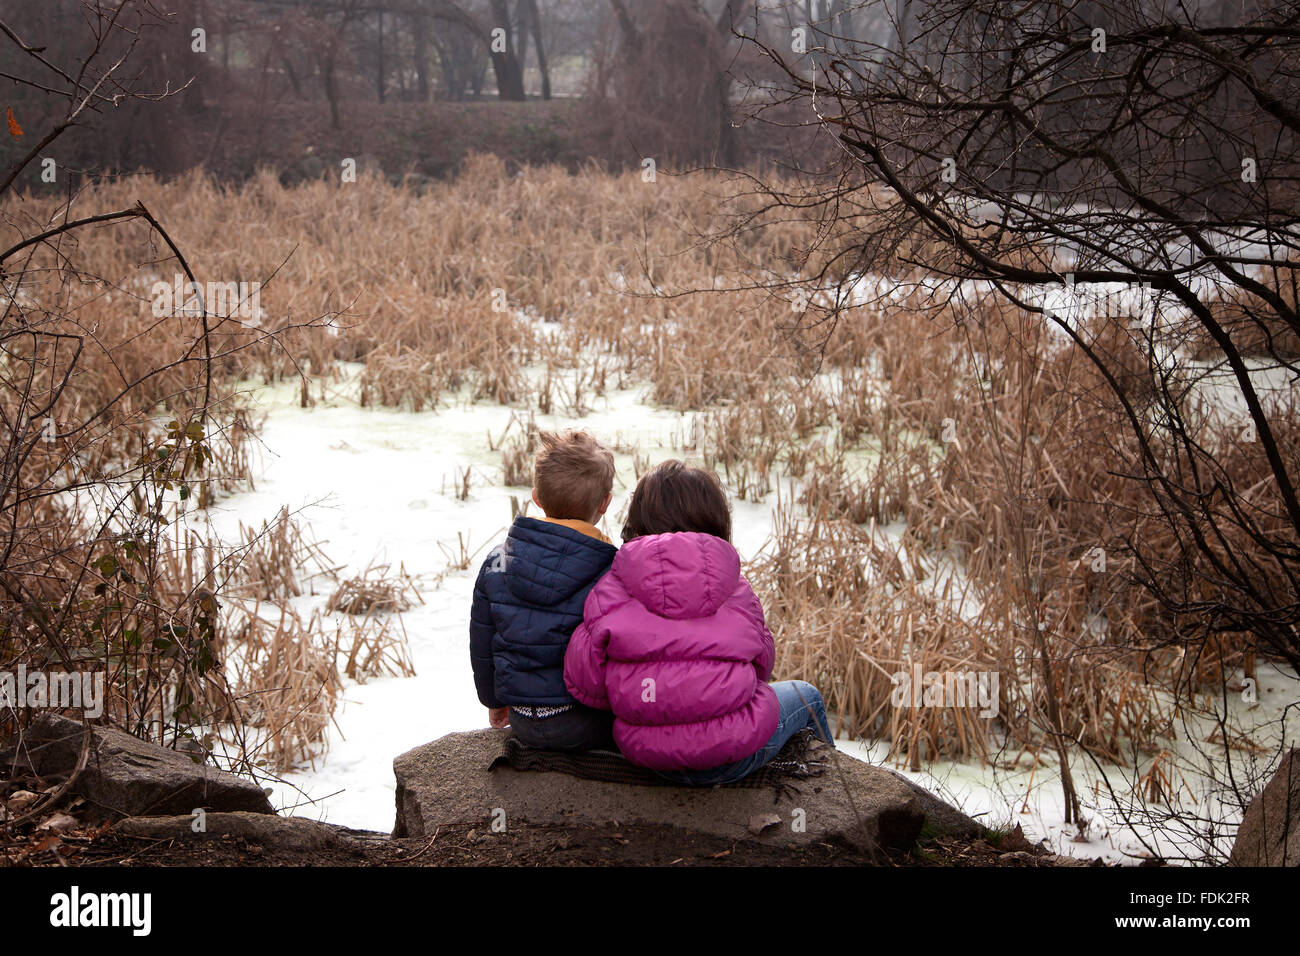 Boy and girl sitting on rock in forest, Sofia, Bulgaria - Stock Image